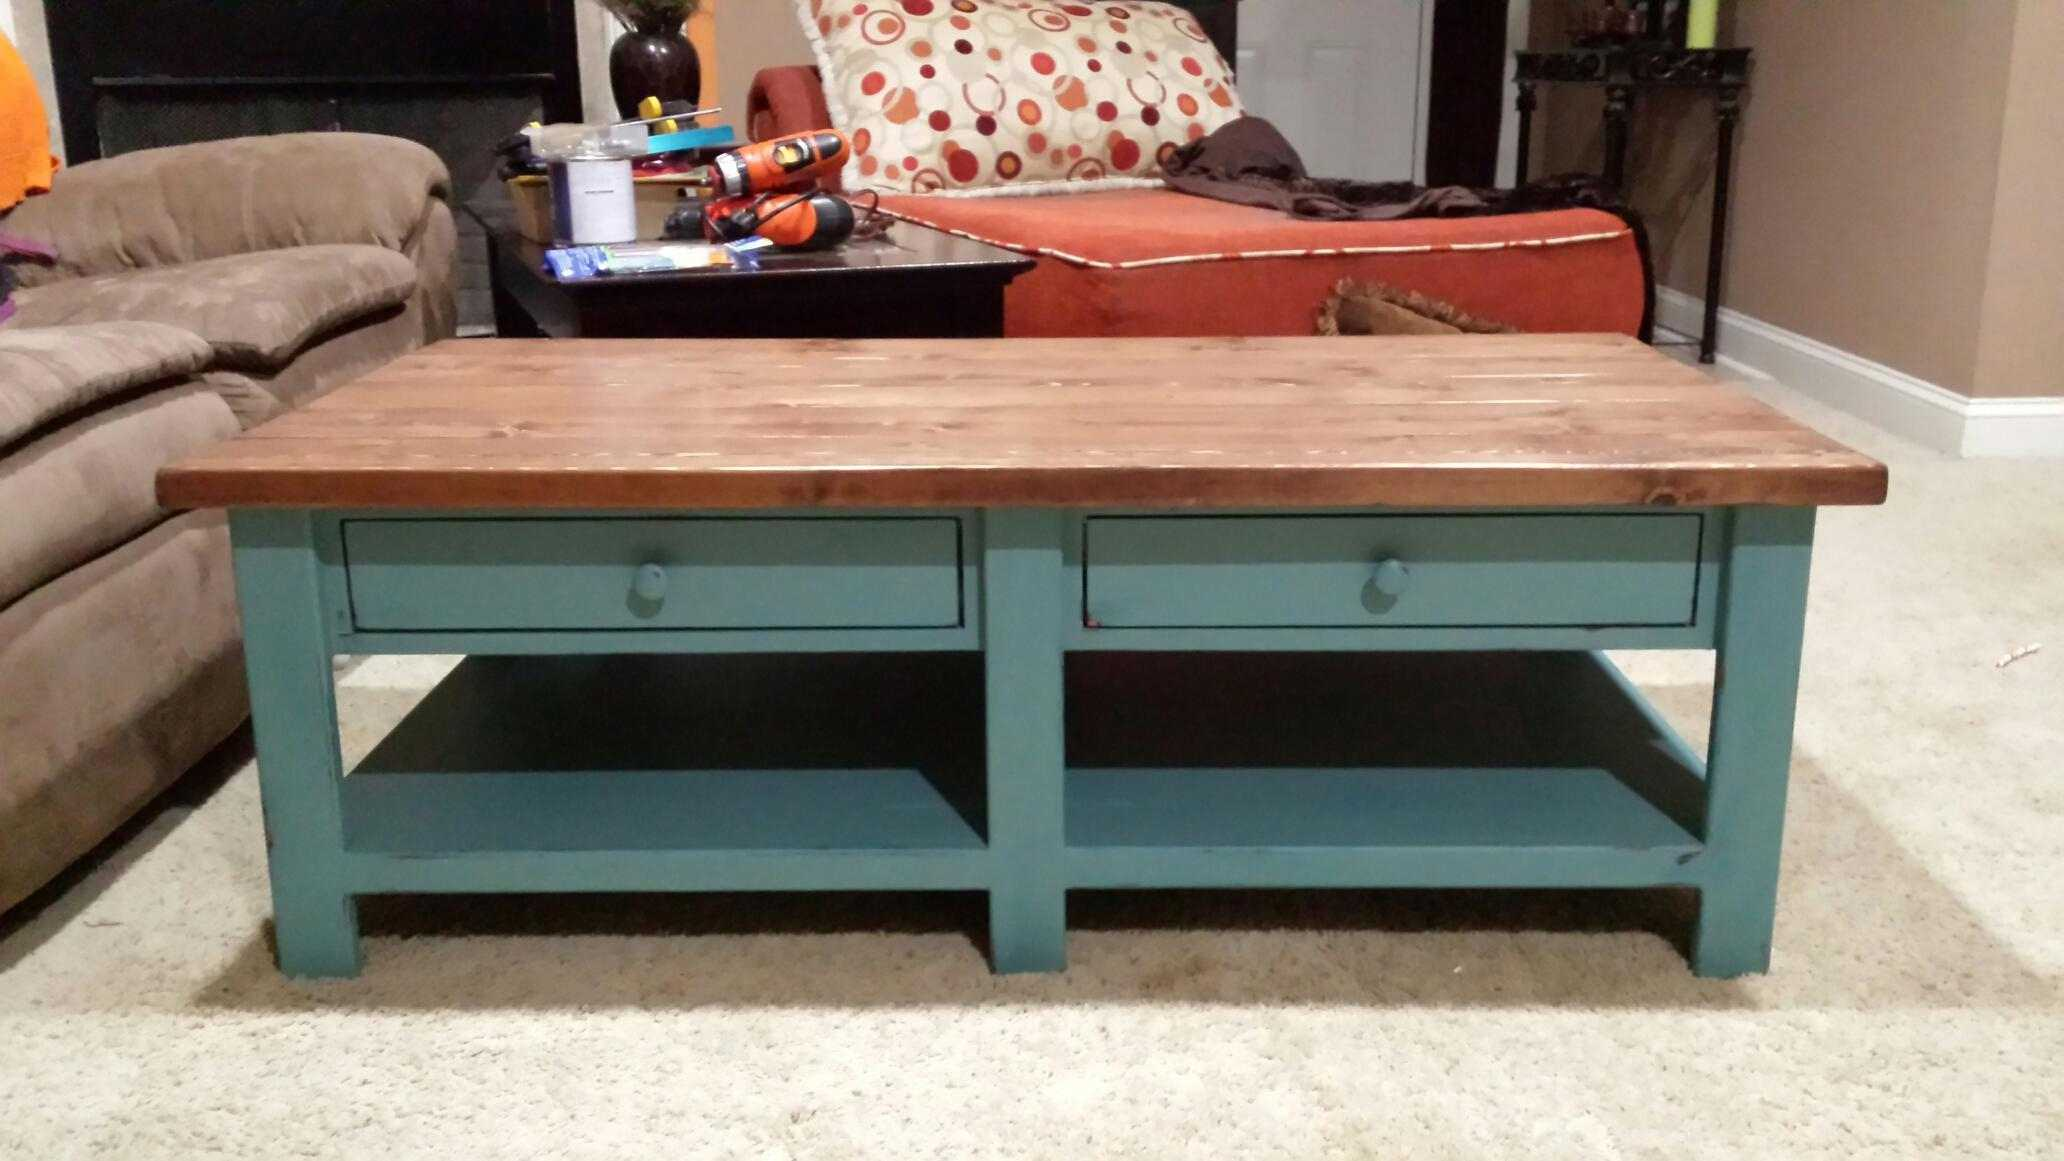 free diy coffee table plans you can build today ana white benchright small farmhouse accent with two drawers and lower bench tier round side silver wall clock brown teak outdoor